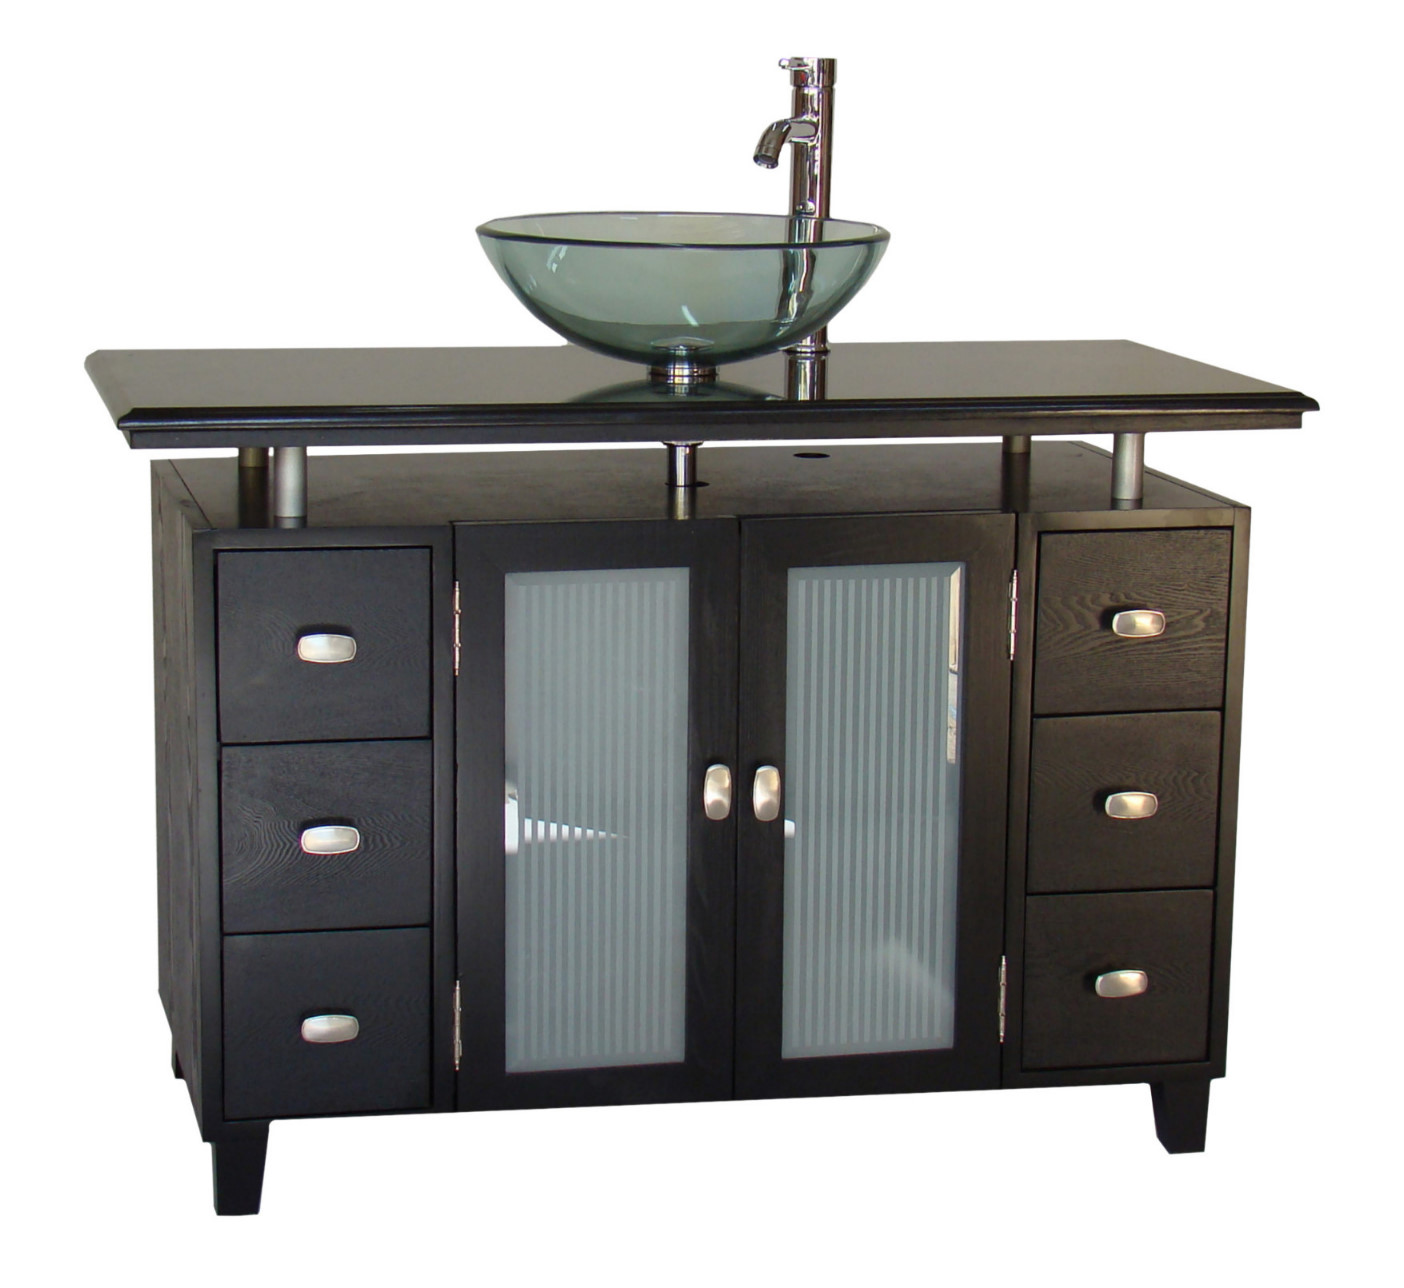 Adelina 46 Inch Vessel Sink Bathroom Vanity Black Granite Top